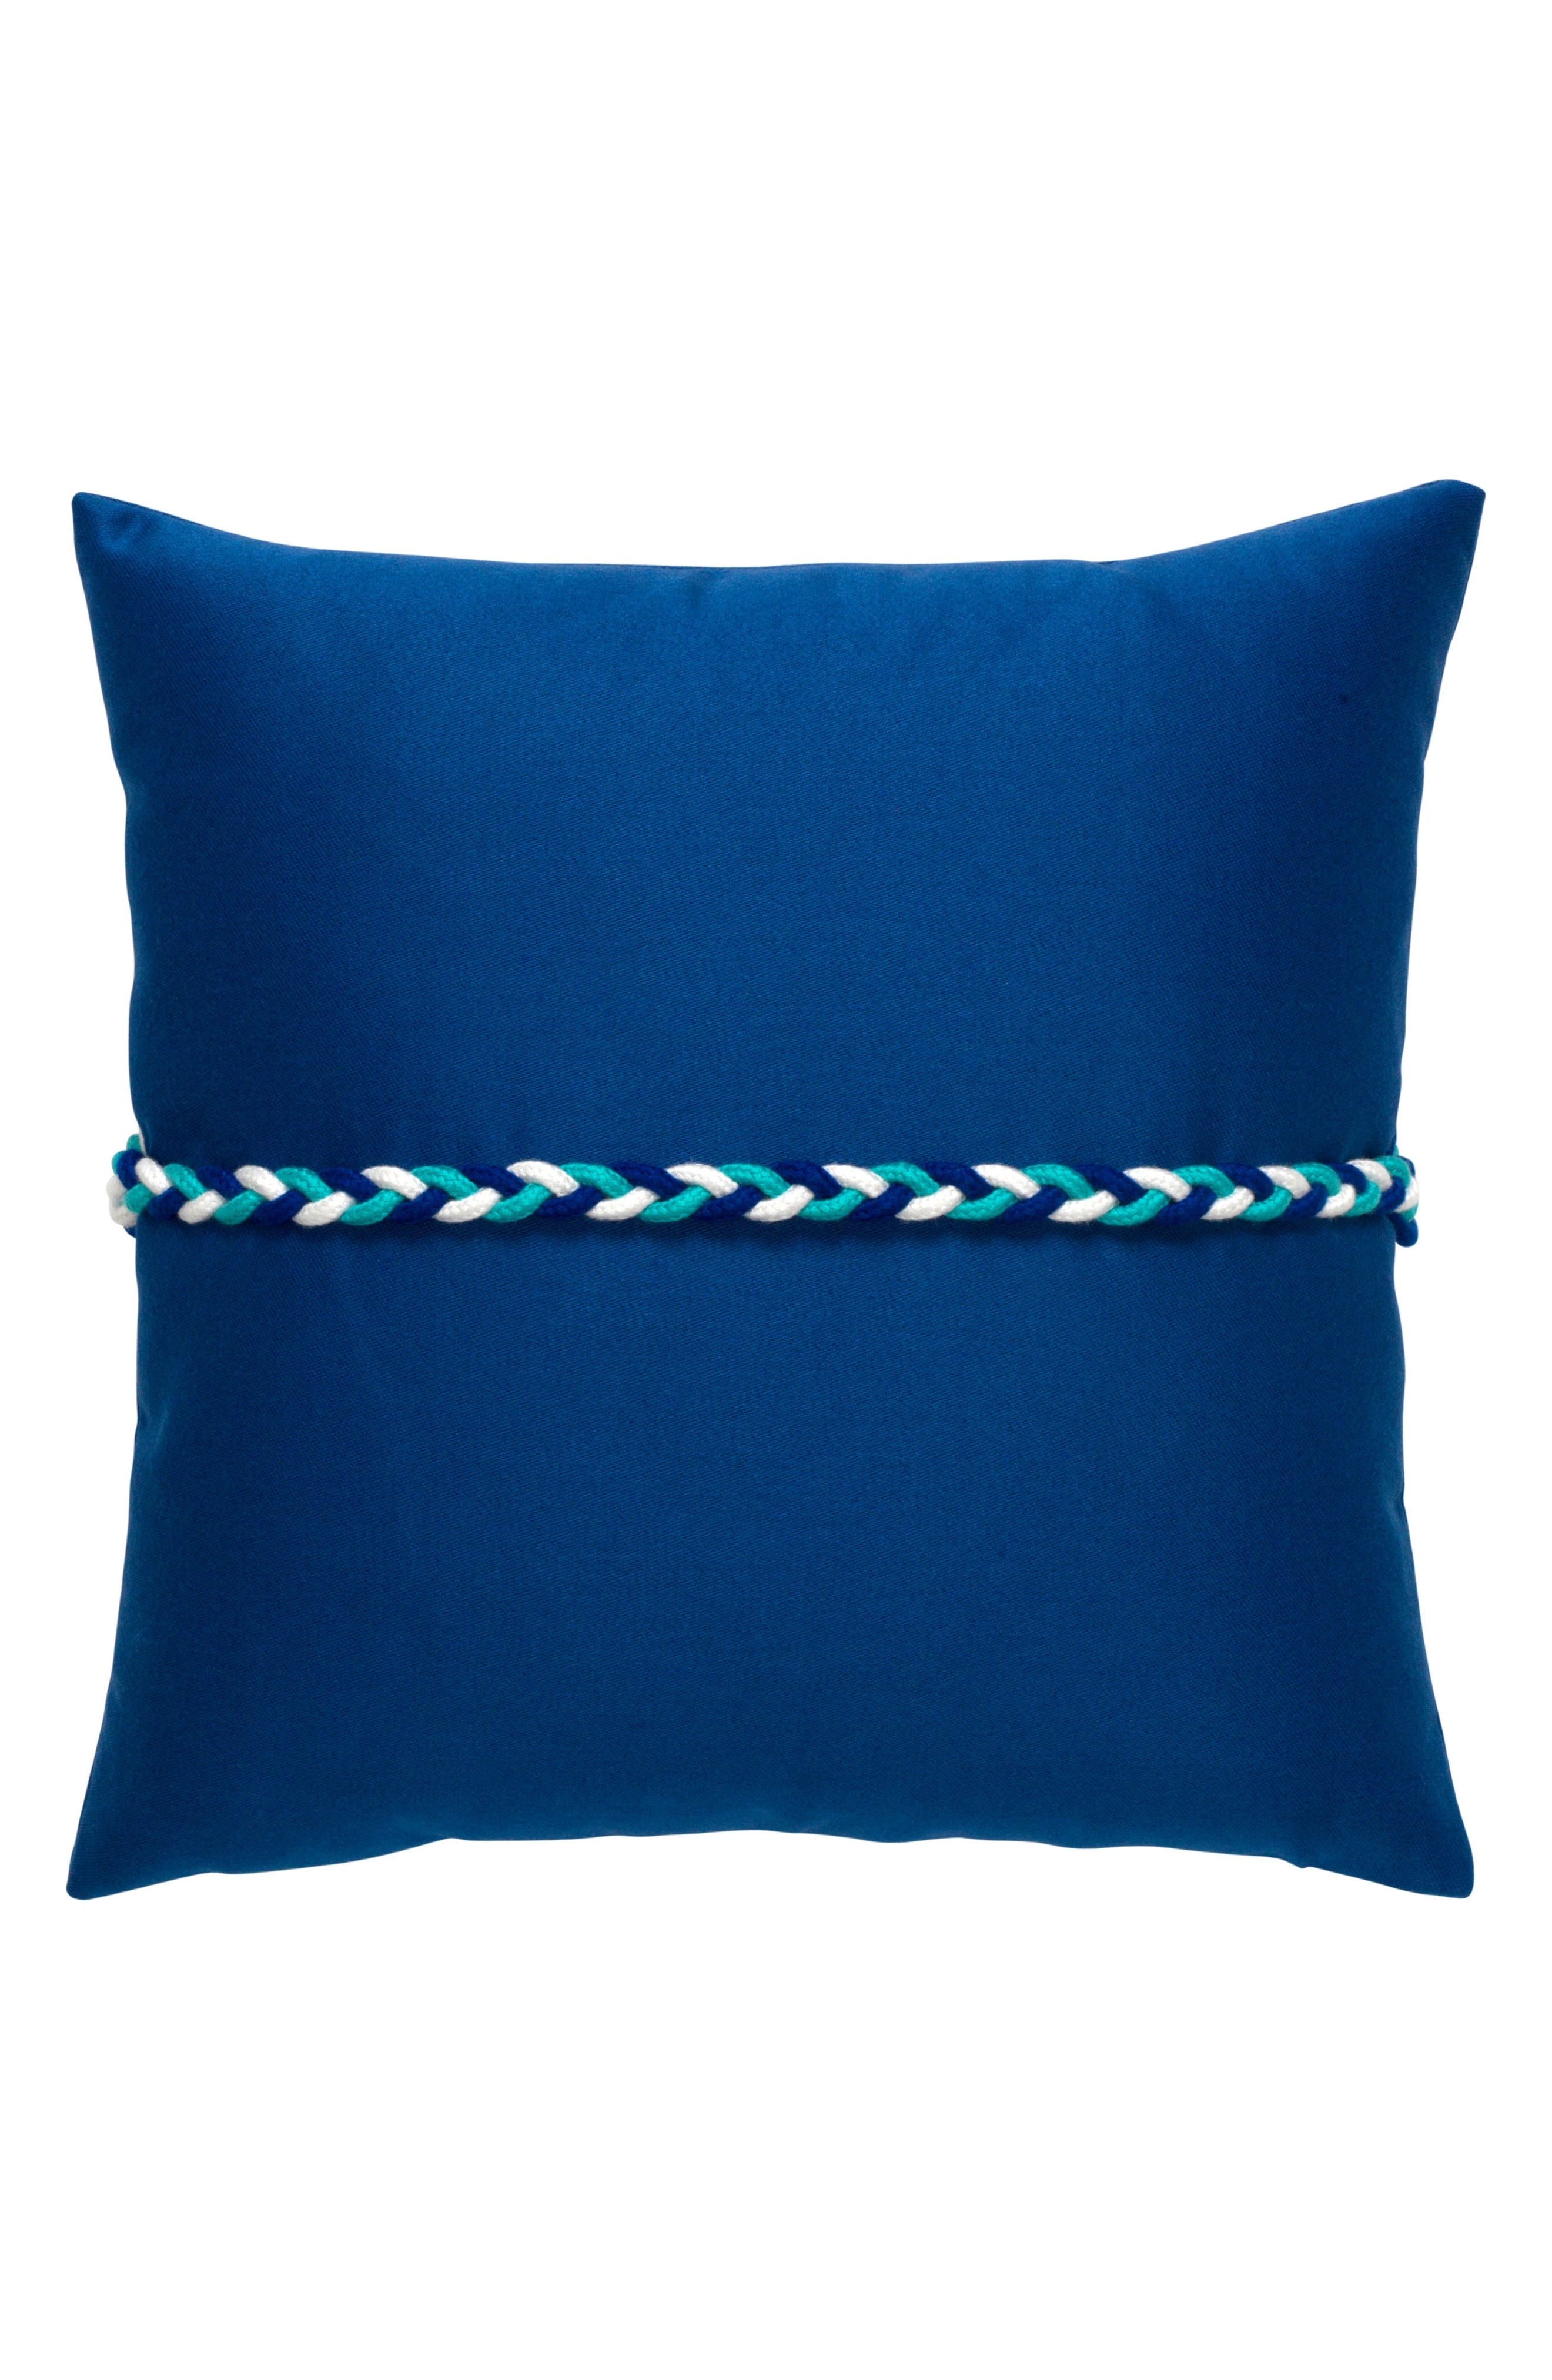 Cobalt Frogs Clasp Indoor/Outdoor Accent Pillow,                             Alternate thumbnail 2, color,                             400